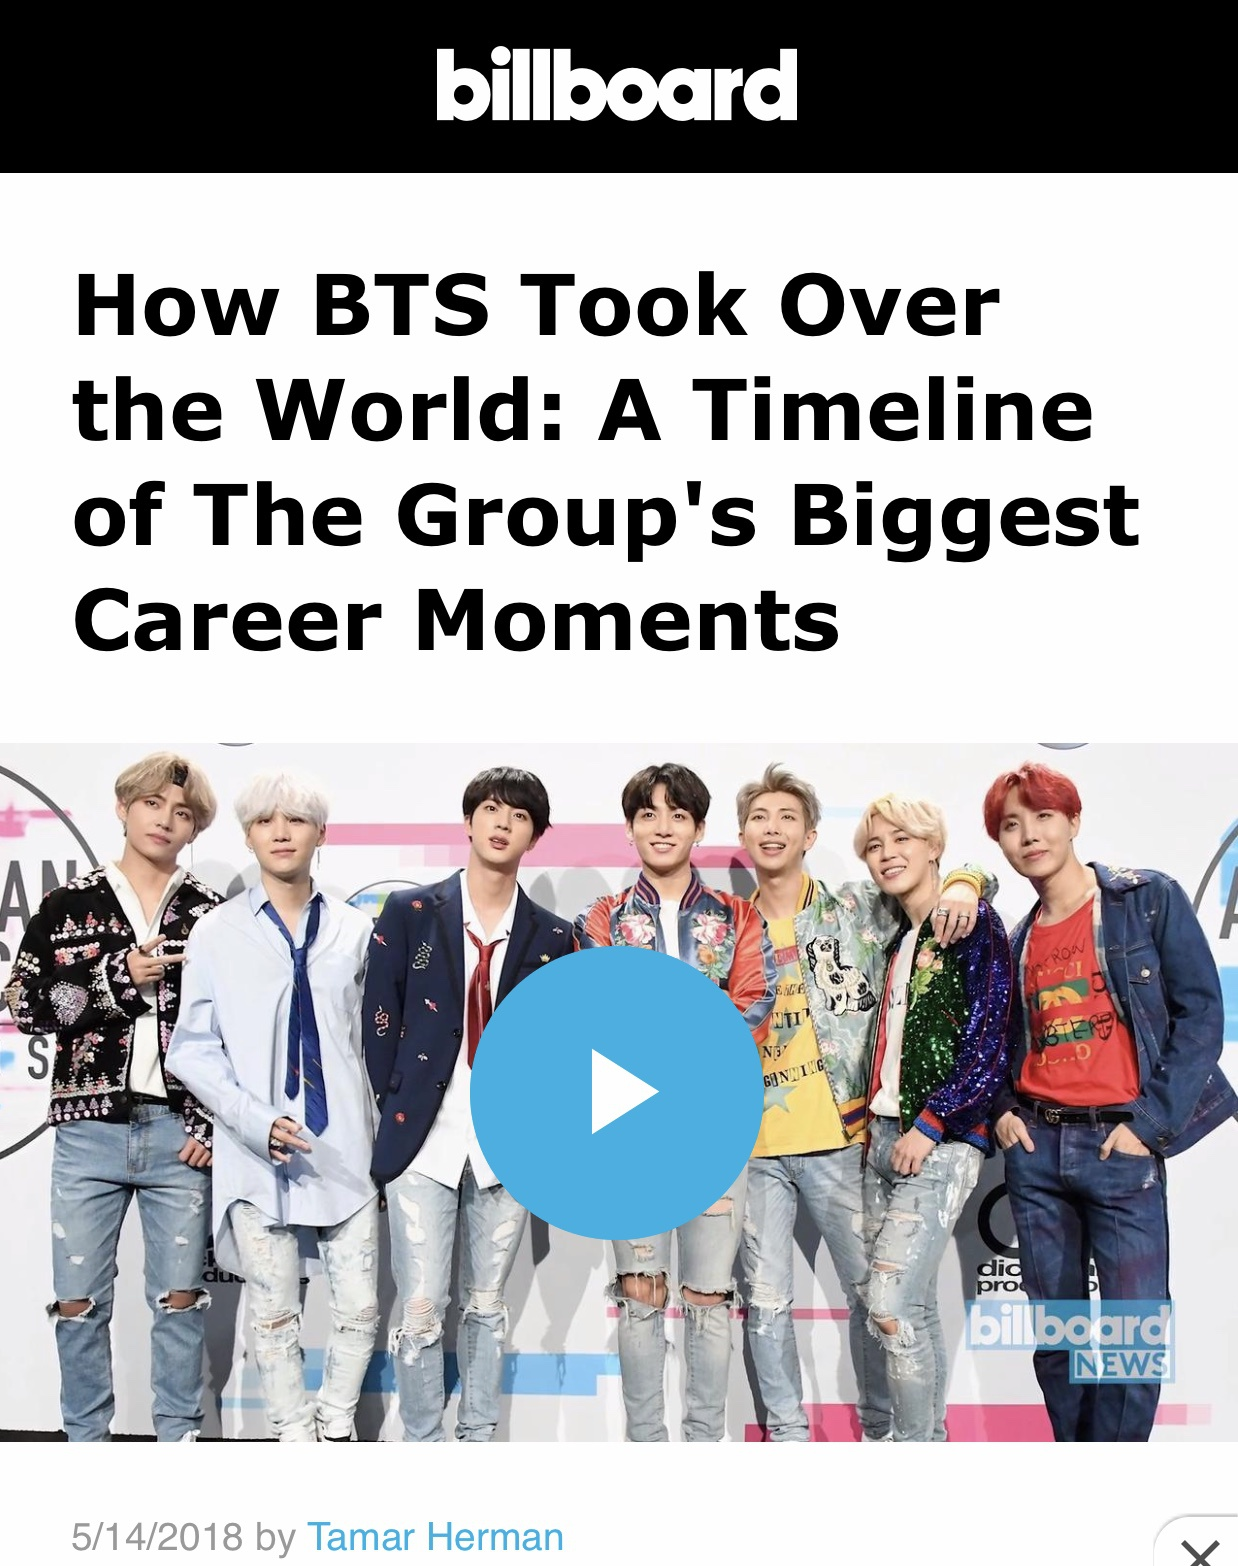 When is the first time BTS went to Billboard   Quora